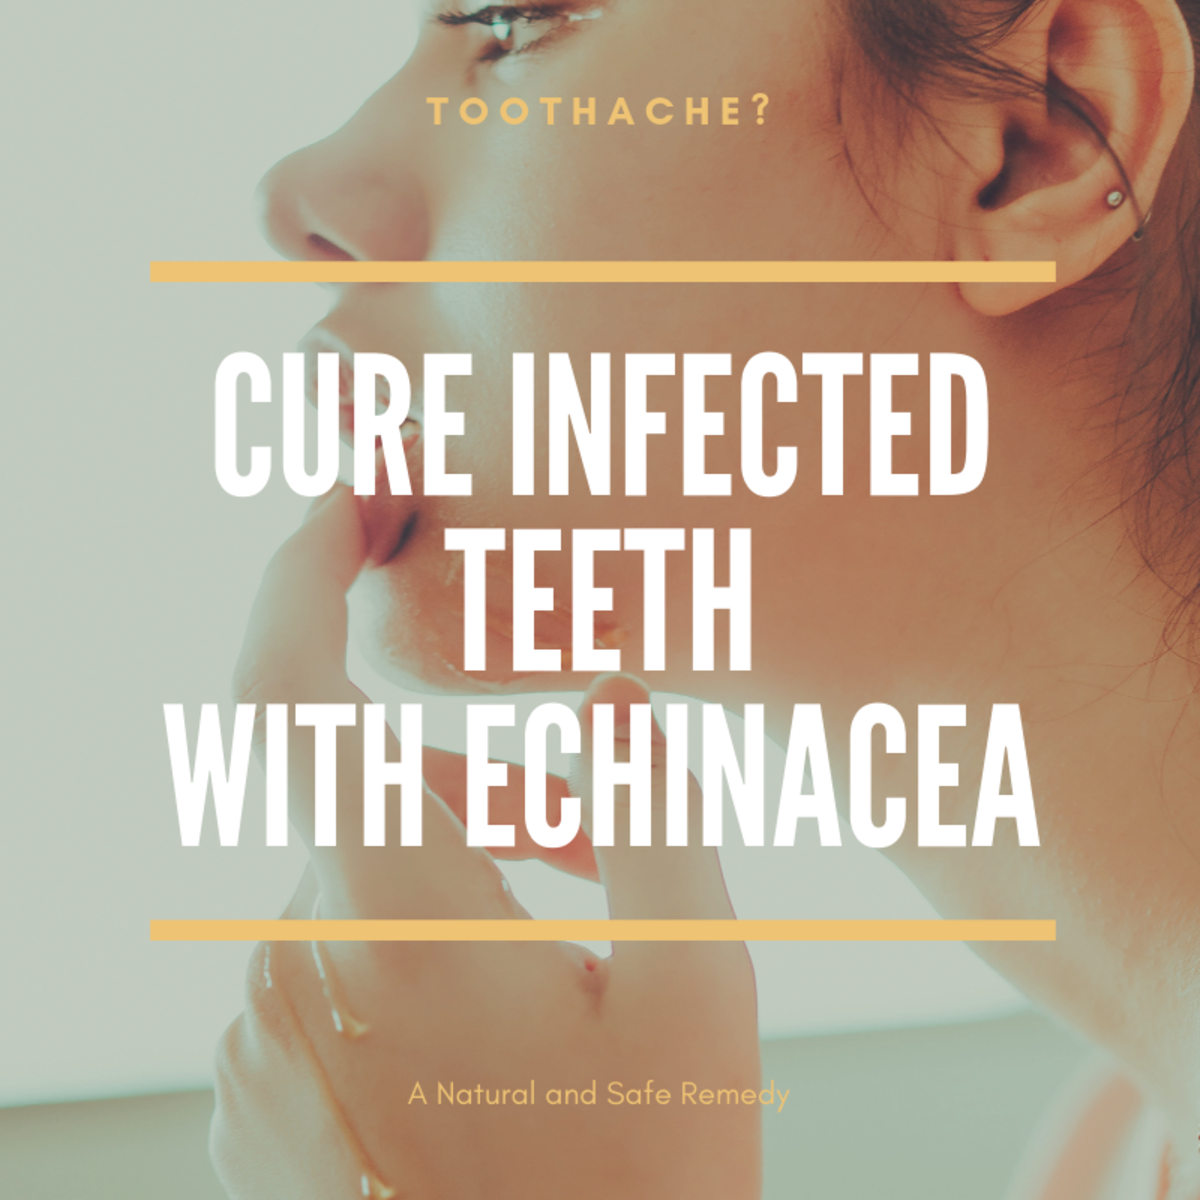 This toothache remedy is widely known and used in many different regions in the world.